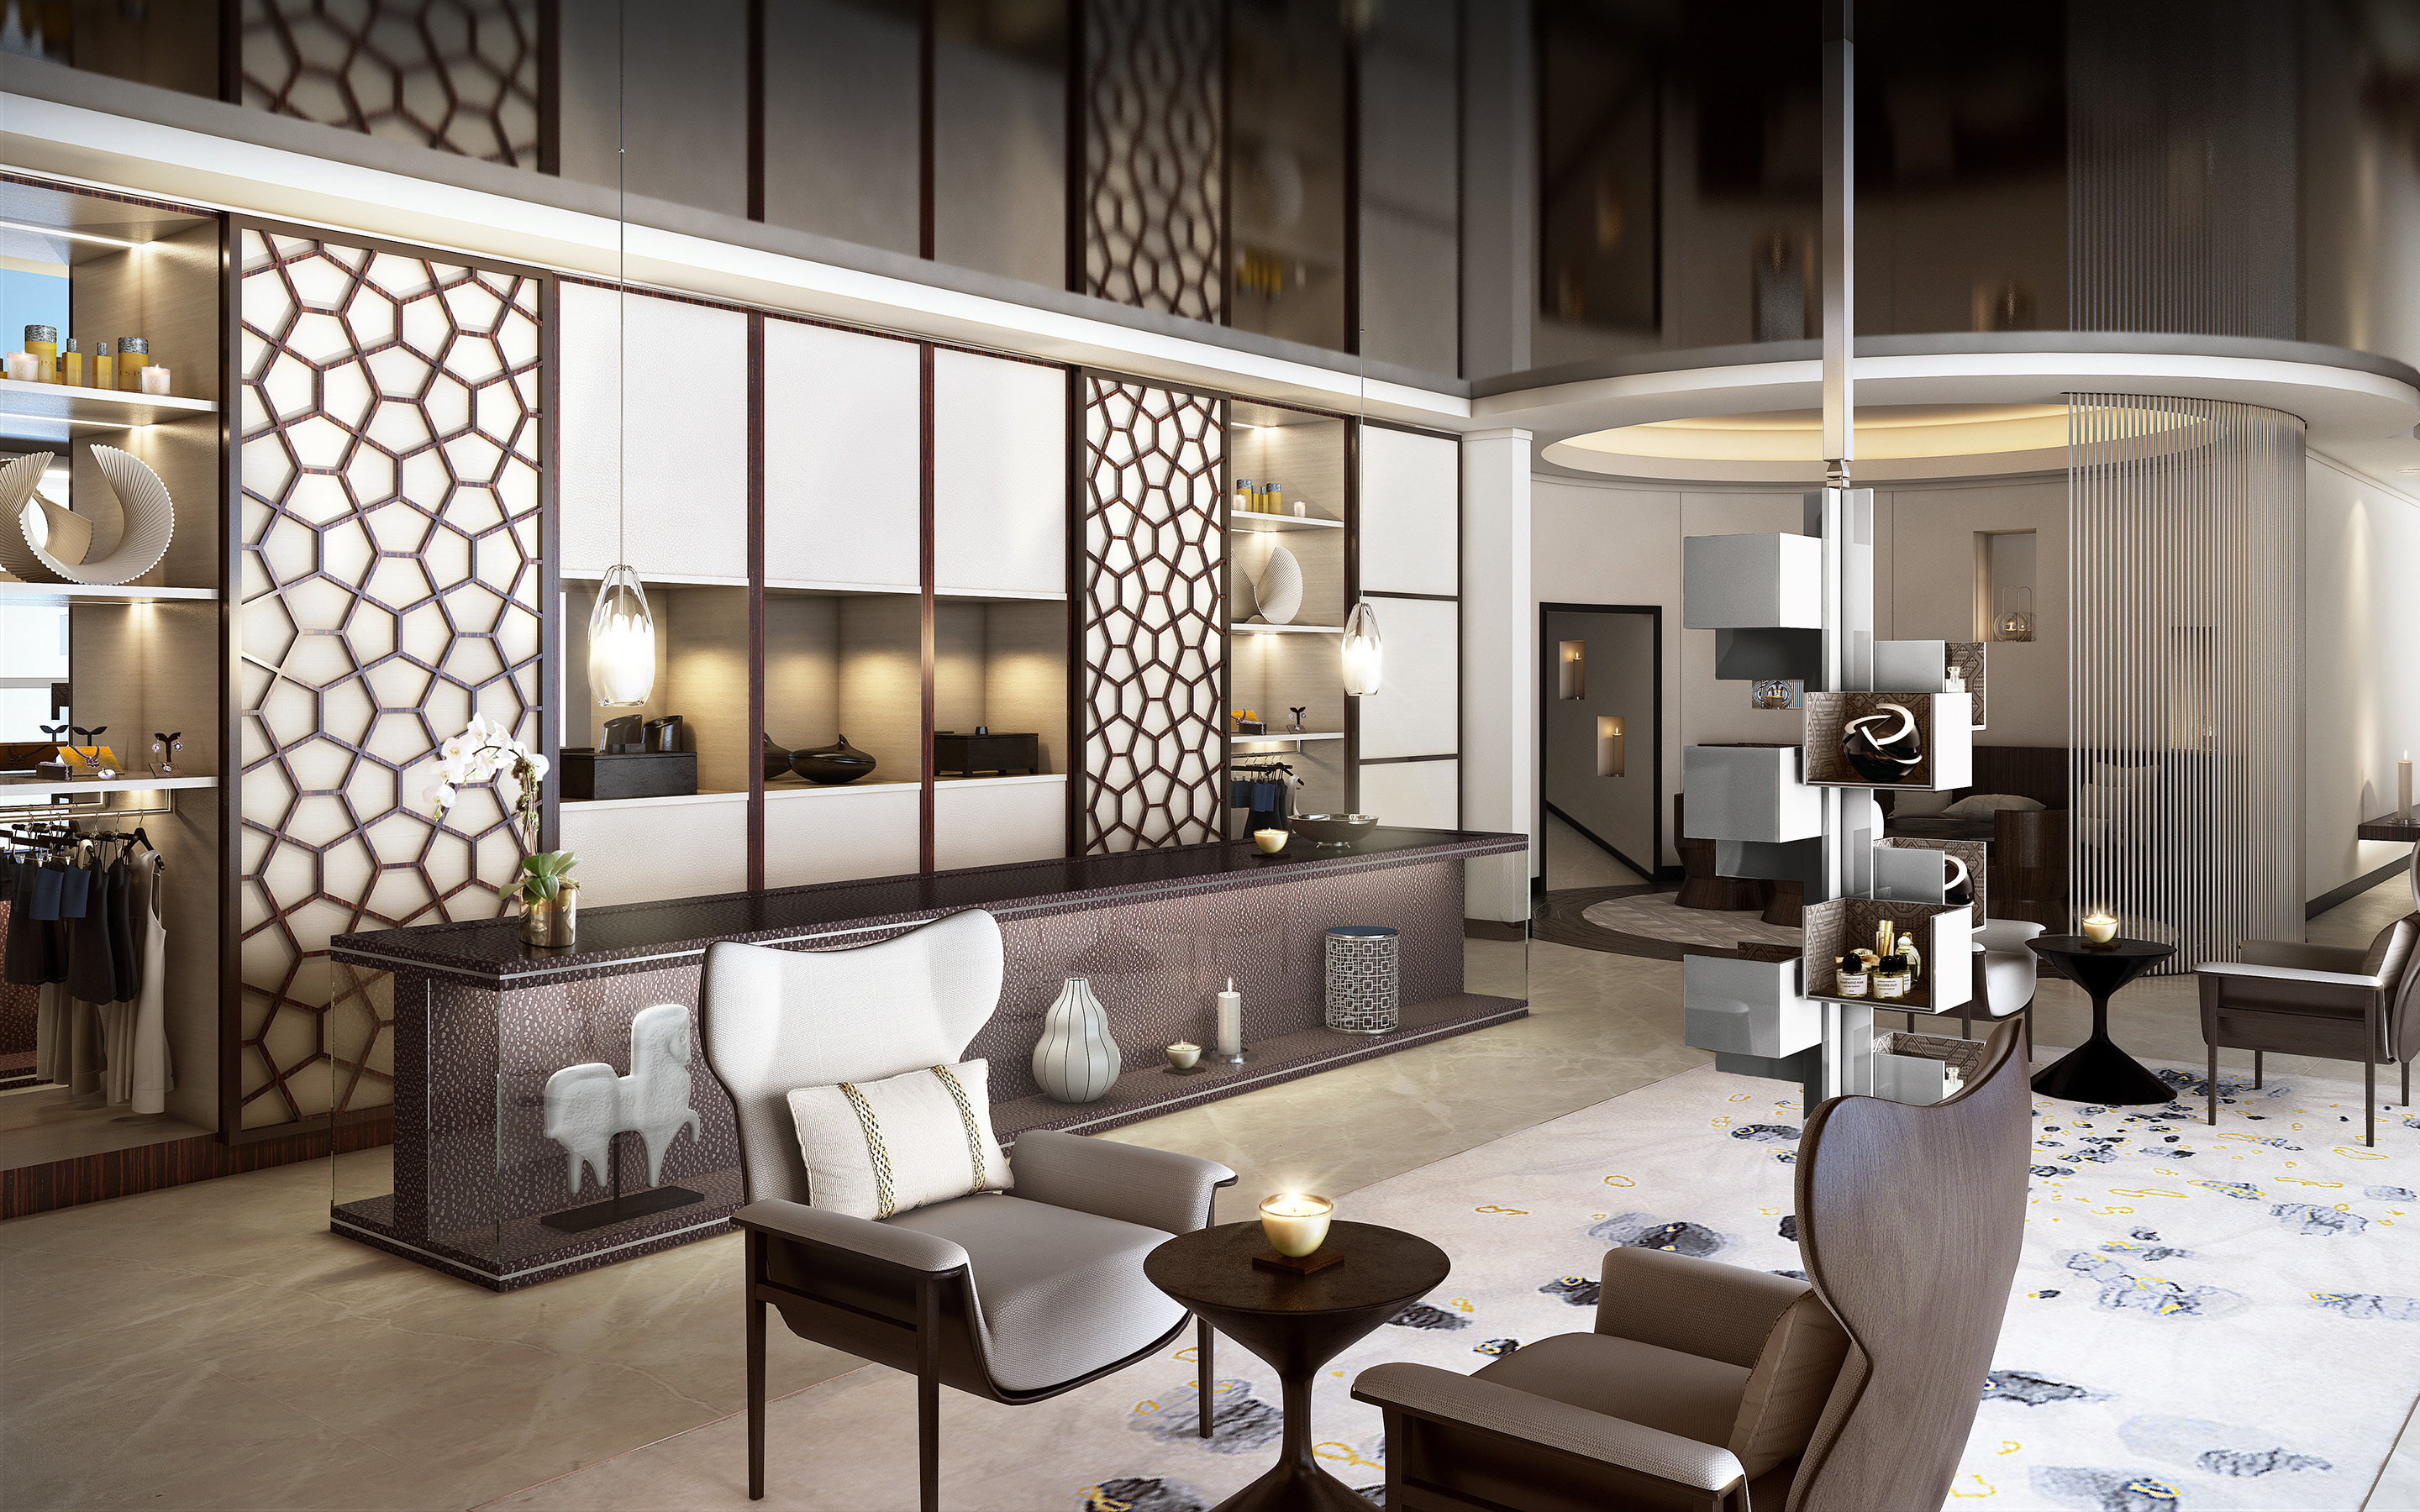 Luxury hotel qatar the gettys group for Design hotel reception